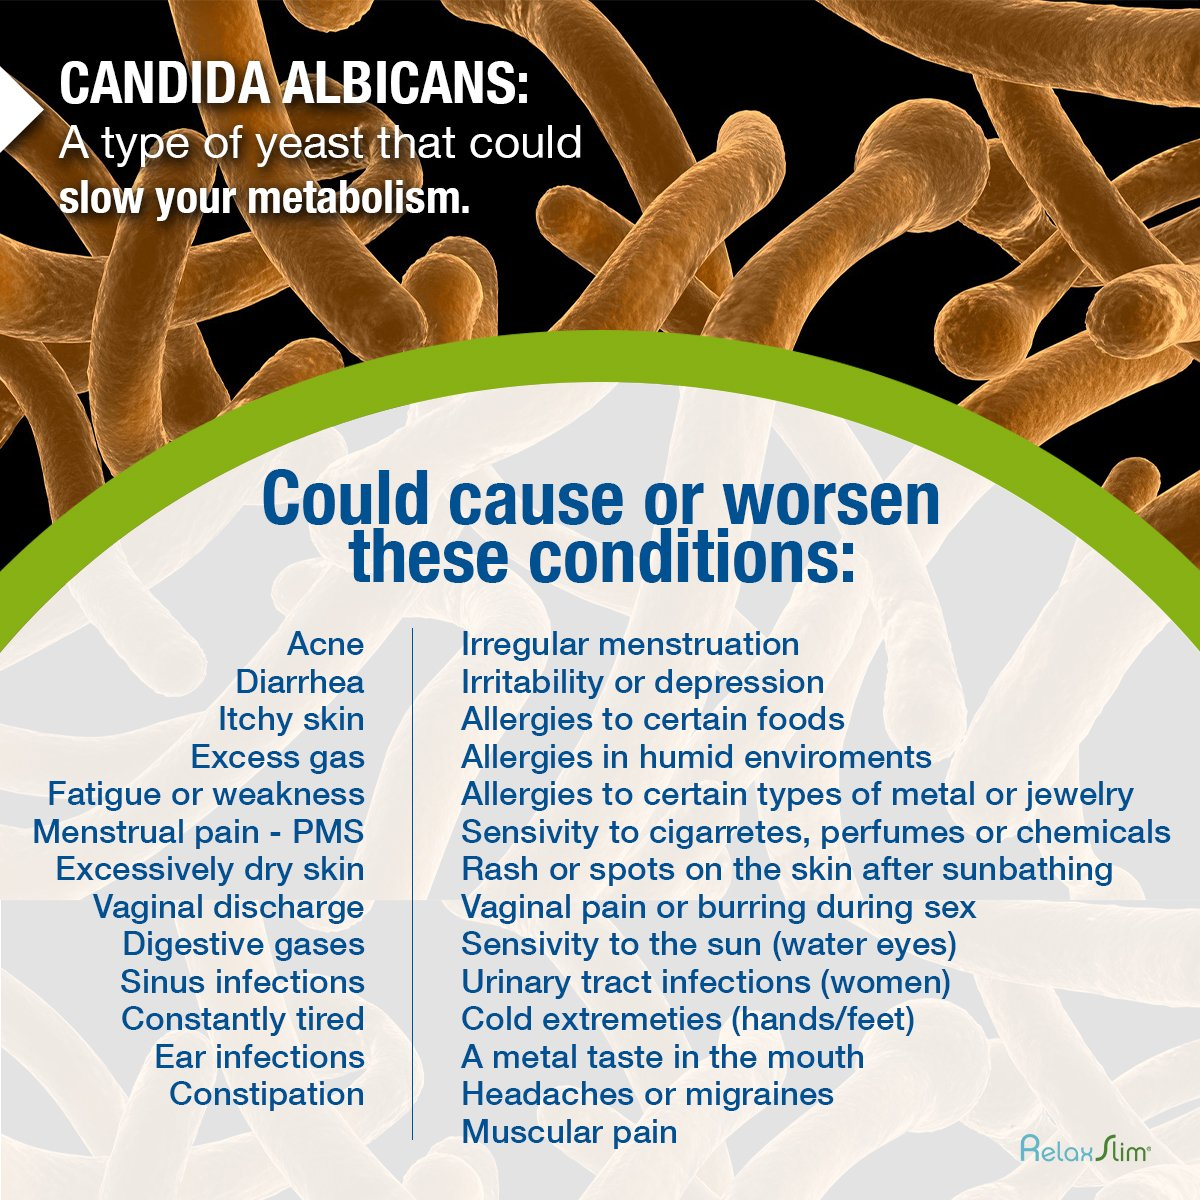 RelaxSlim Candida Albicans Treatment, Formulated by Award Winning Metabolism and Weight Loss Specialist- Full Detox and Cleanse of Fungus for Health and Weight Loss Aid by RelaxSlim  (Image #6)